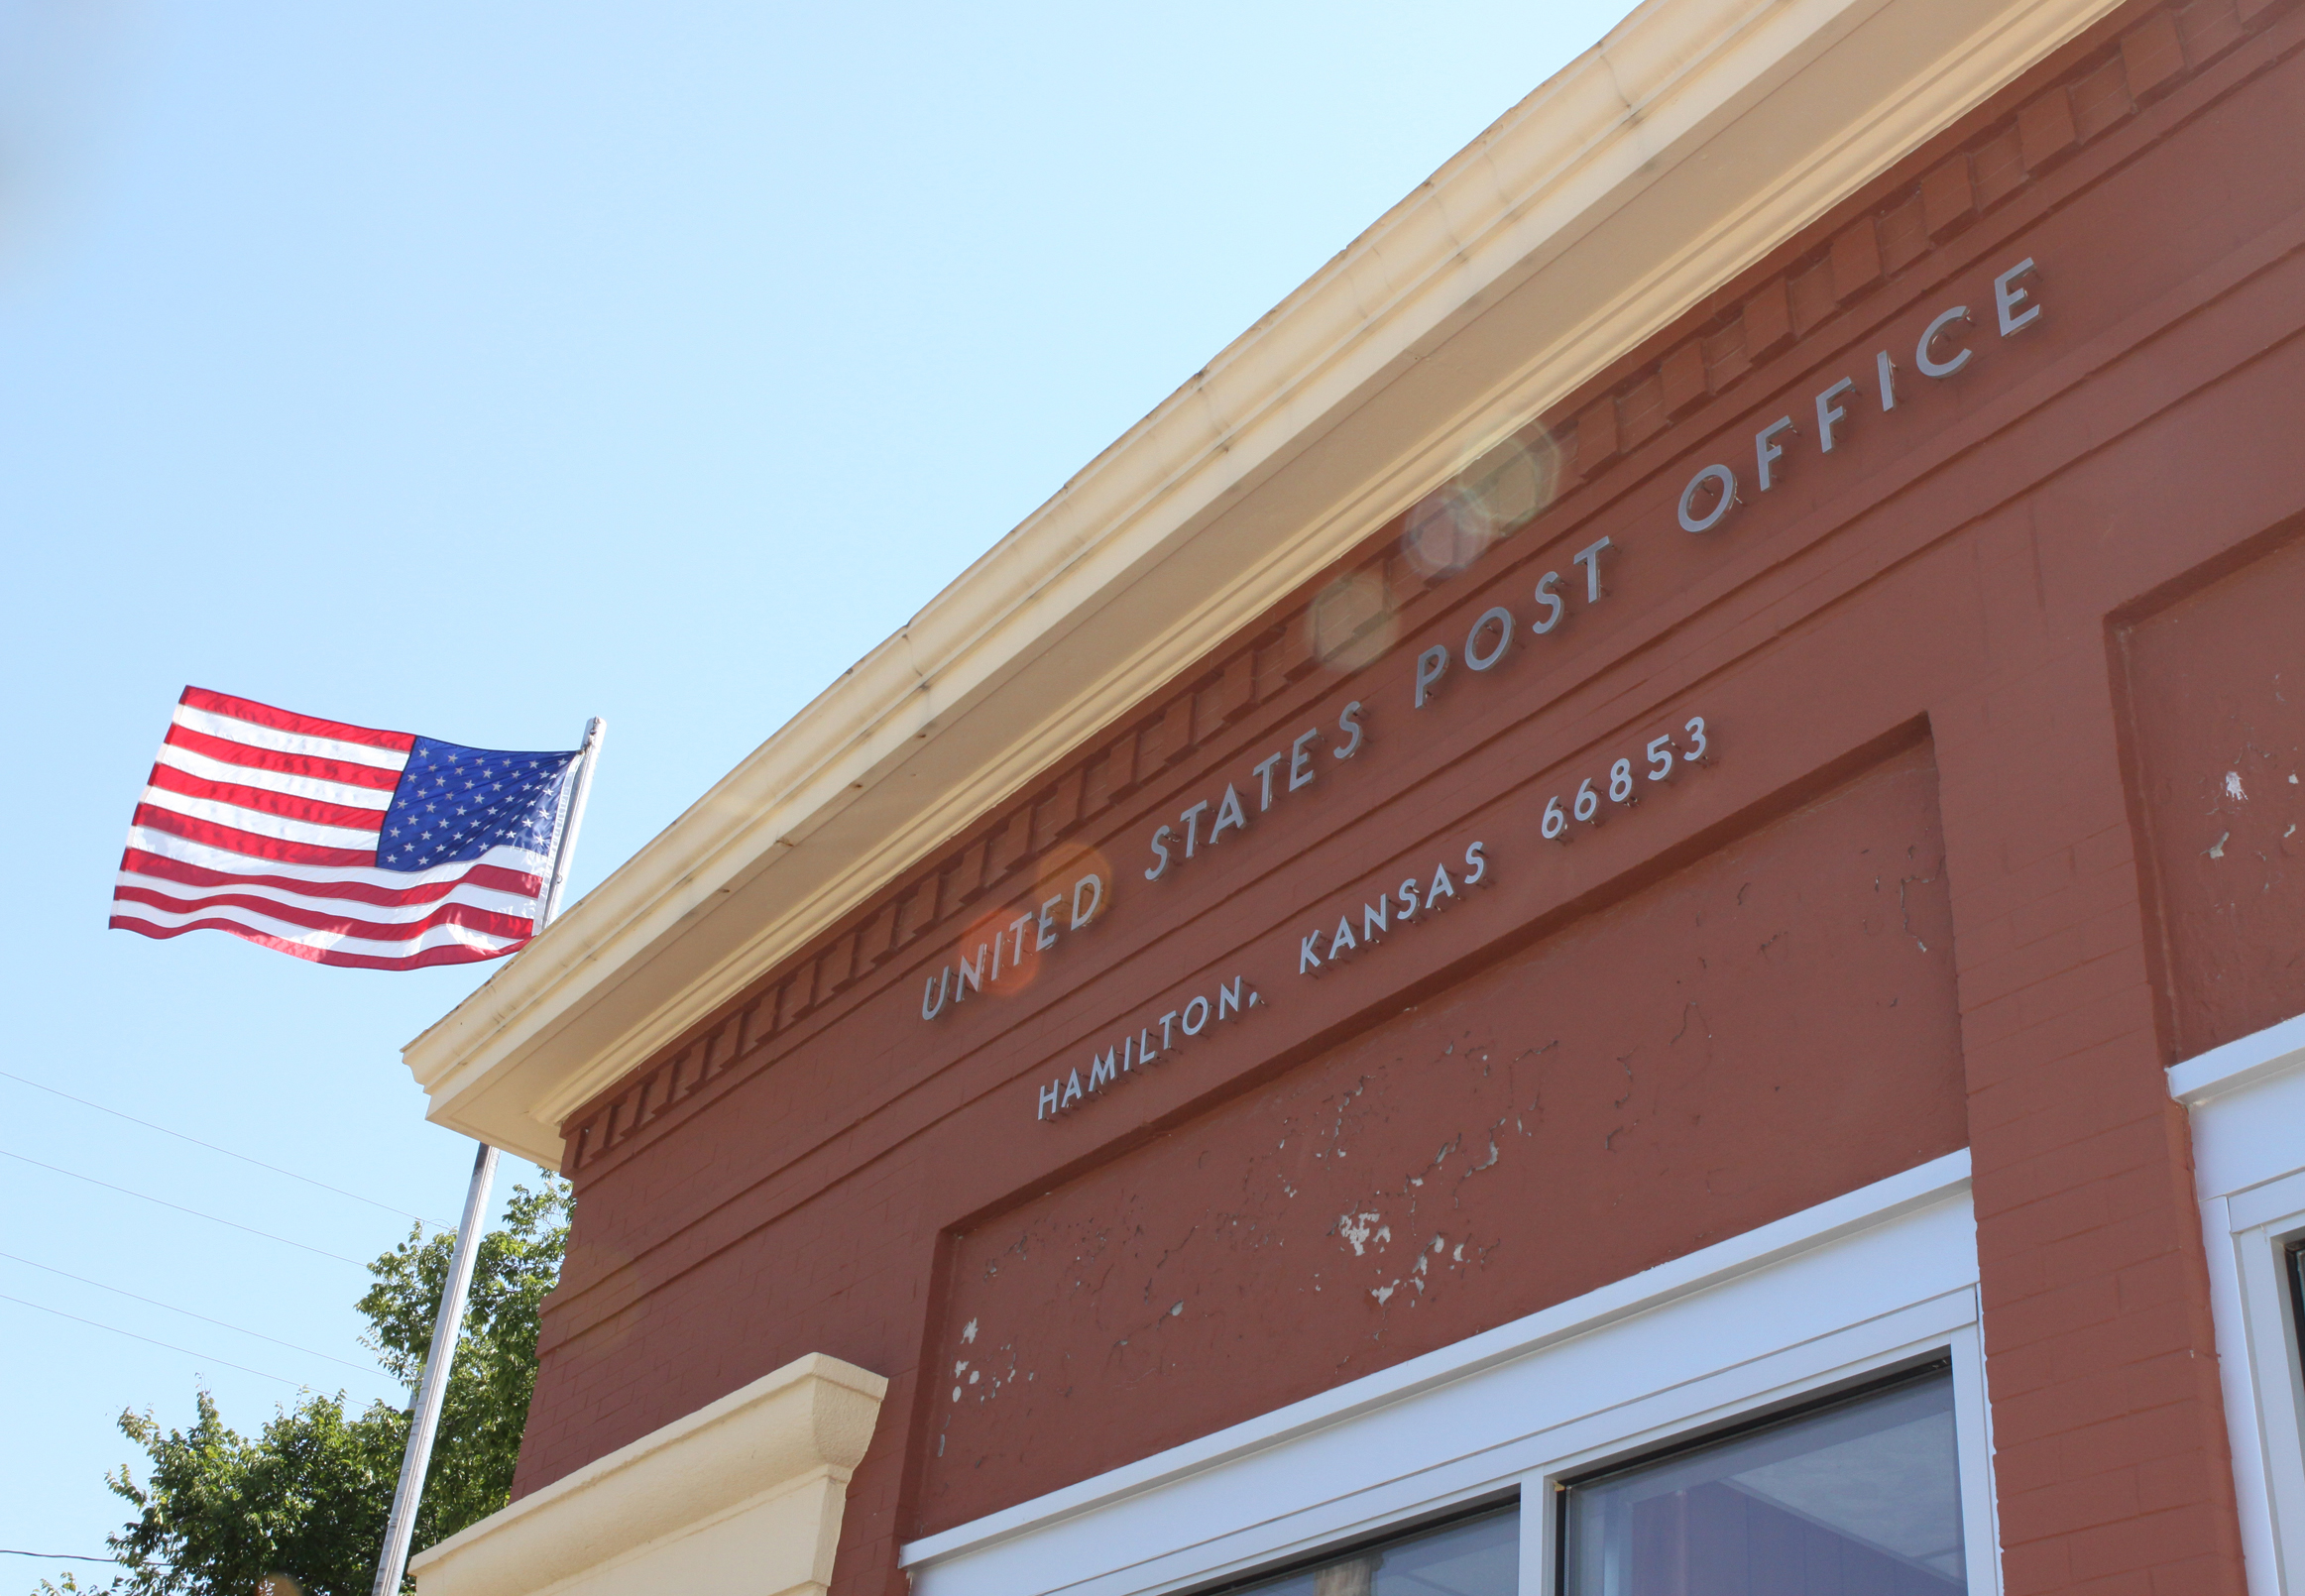 Rural kansas tourism hamilton exploration hamilton ks us post why does this post office have different looking architecture and why is there a vault in it youll have to see for yourself by visiting hamiltons post solutioingenieria Gallery